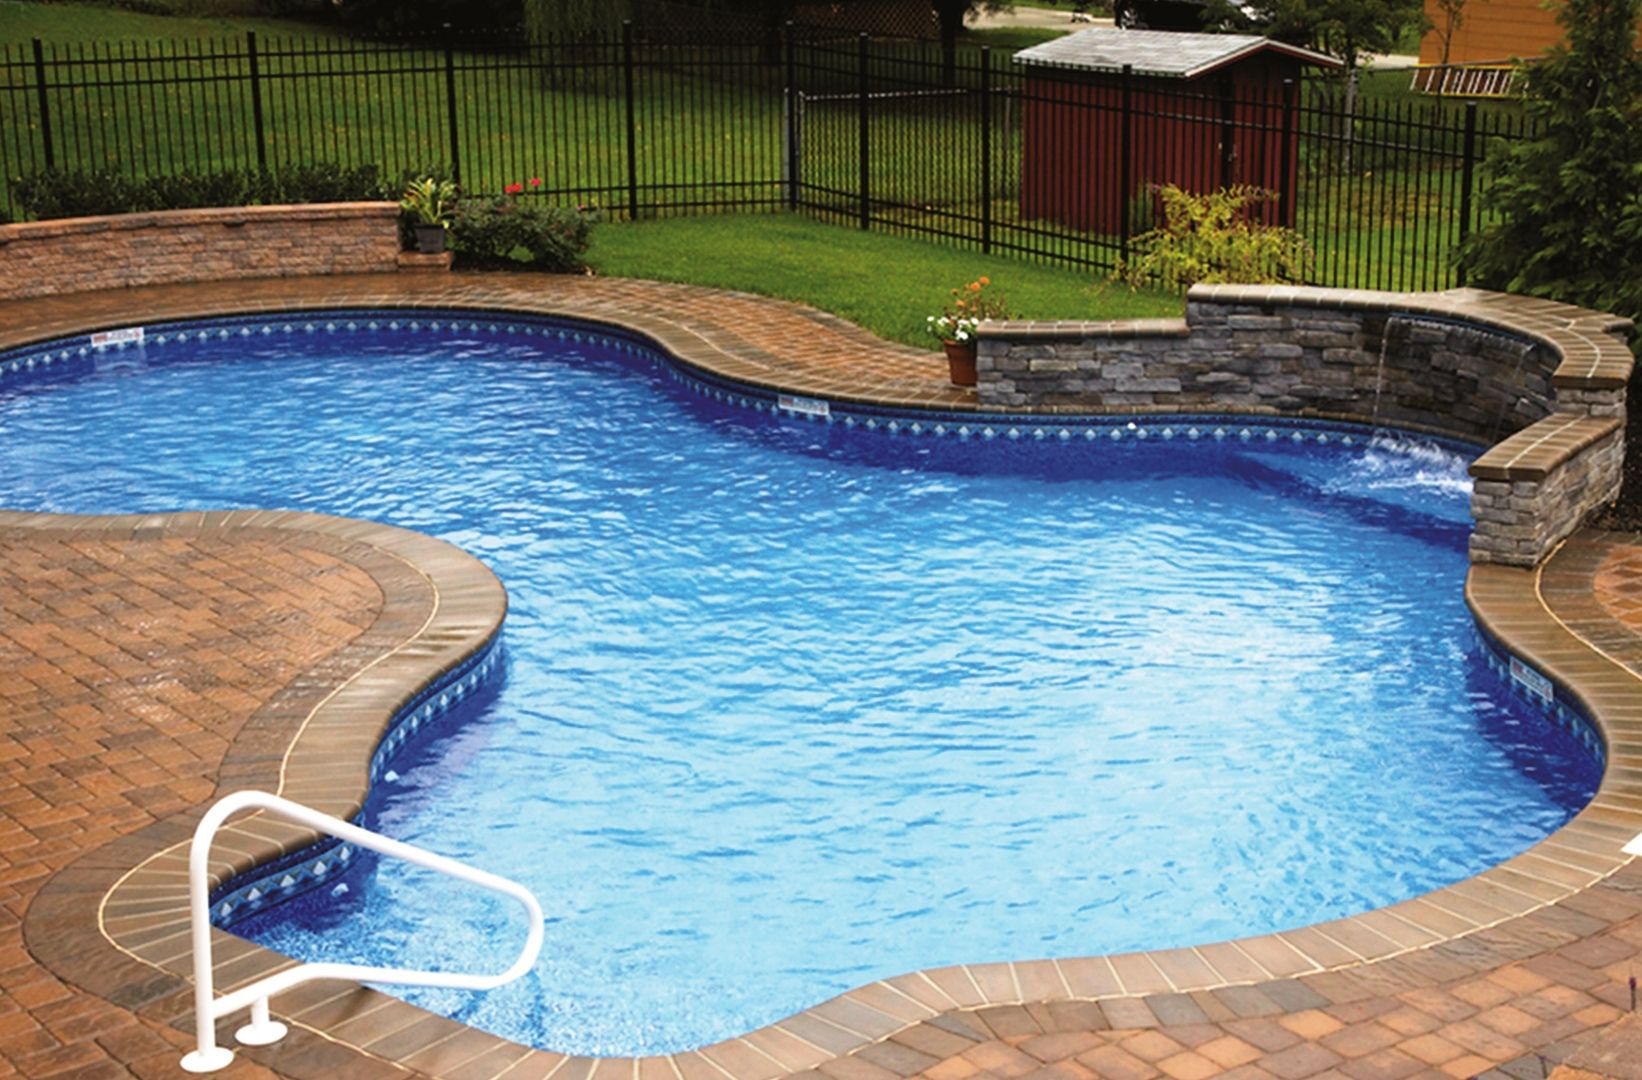 Back yard swimming pool ideas swimming pool design for Backyard inground pool designs